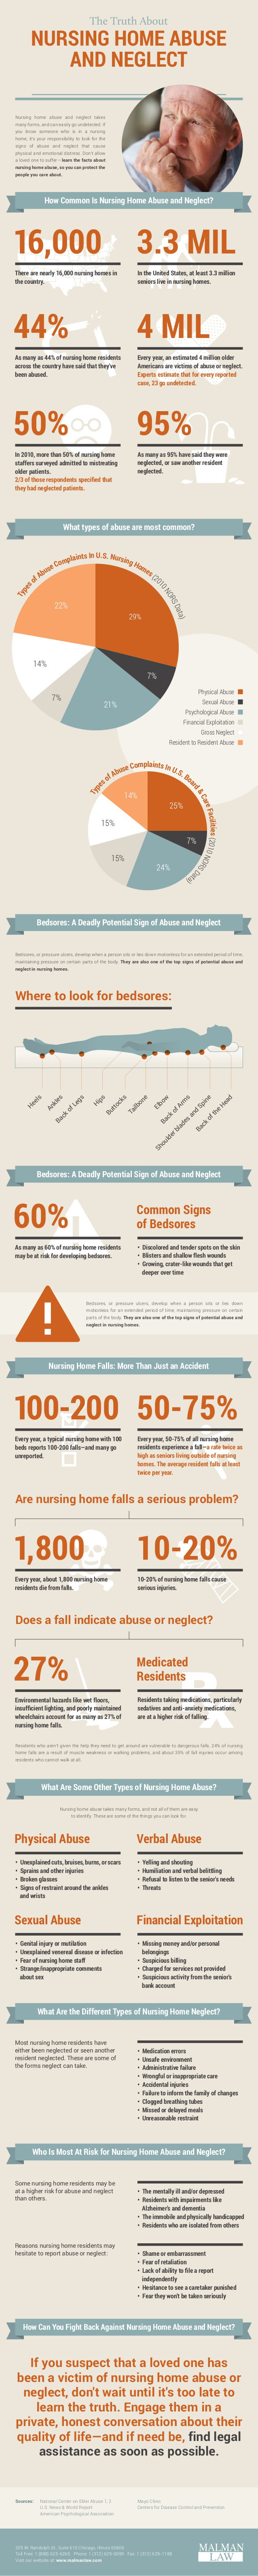 Infographic: The Truth About Nursing Home Abuse and Neglect